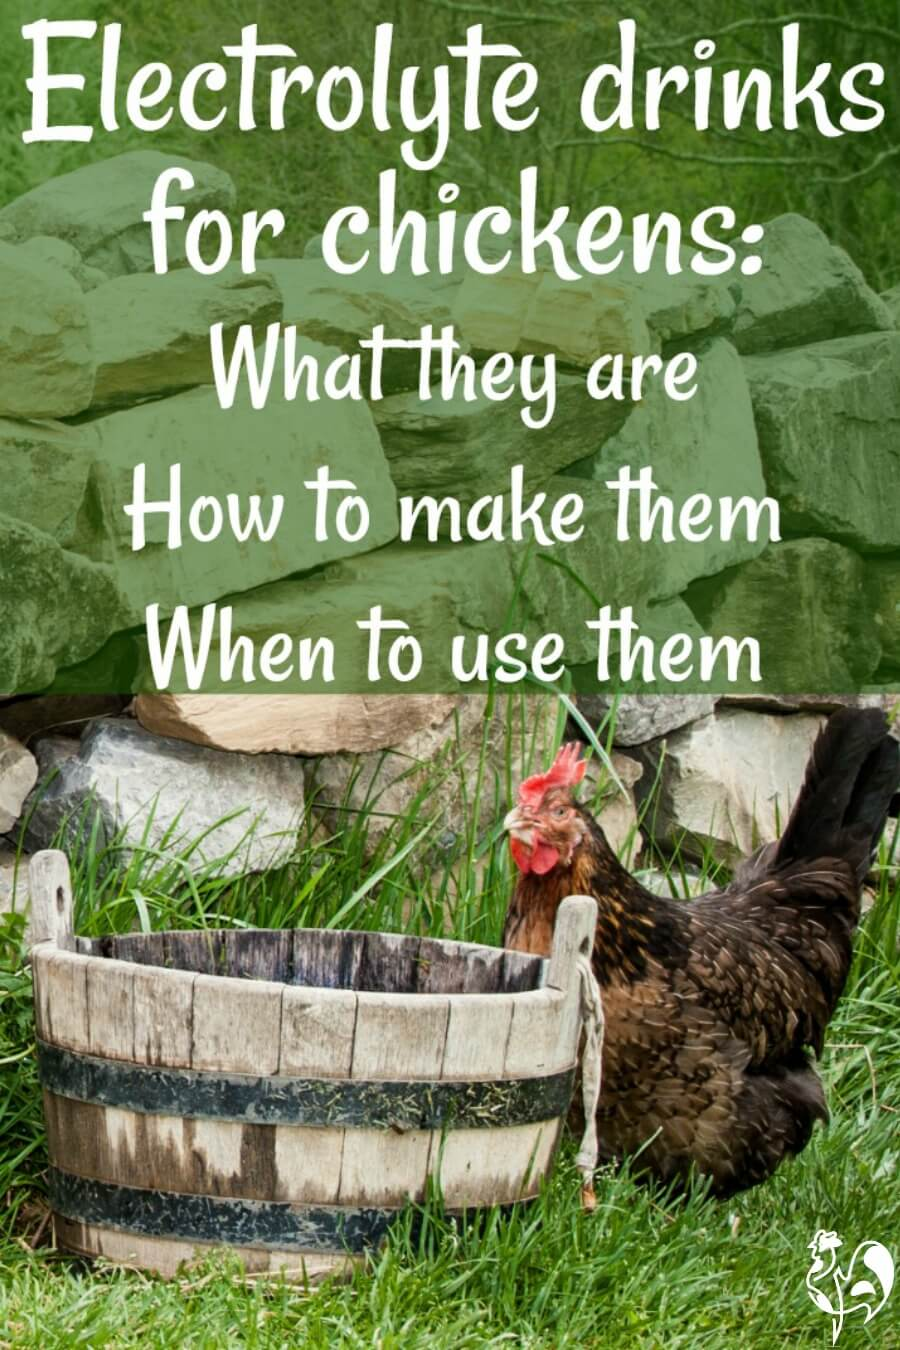 A Homemade Electrolyte Drink For Chickens